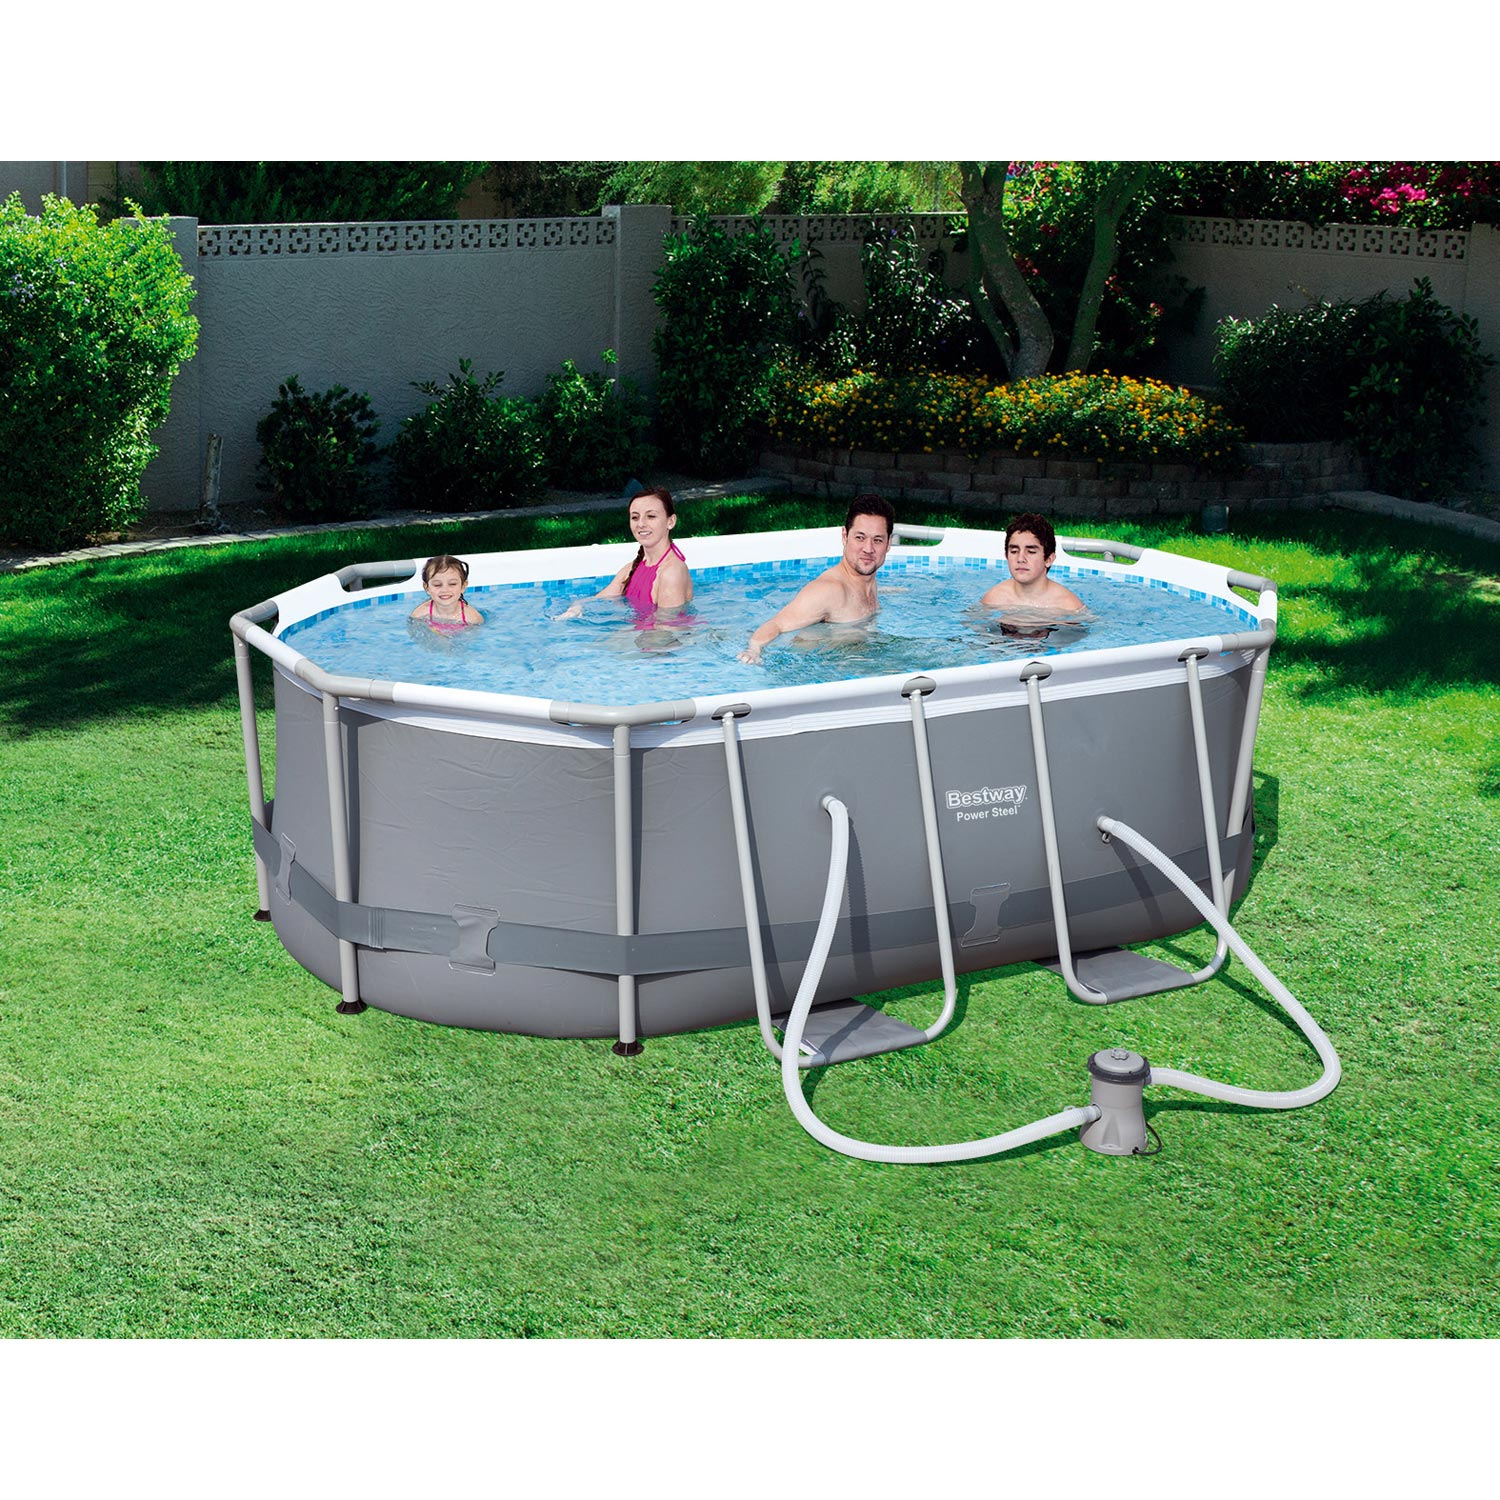 Piscine hors sol autoportante tubulaire bestway l 3 x l 2 for Piscine hors sol dimension